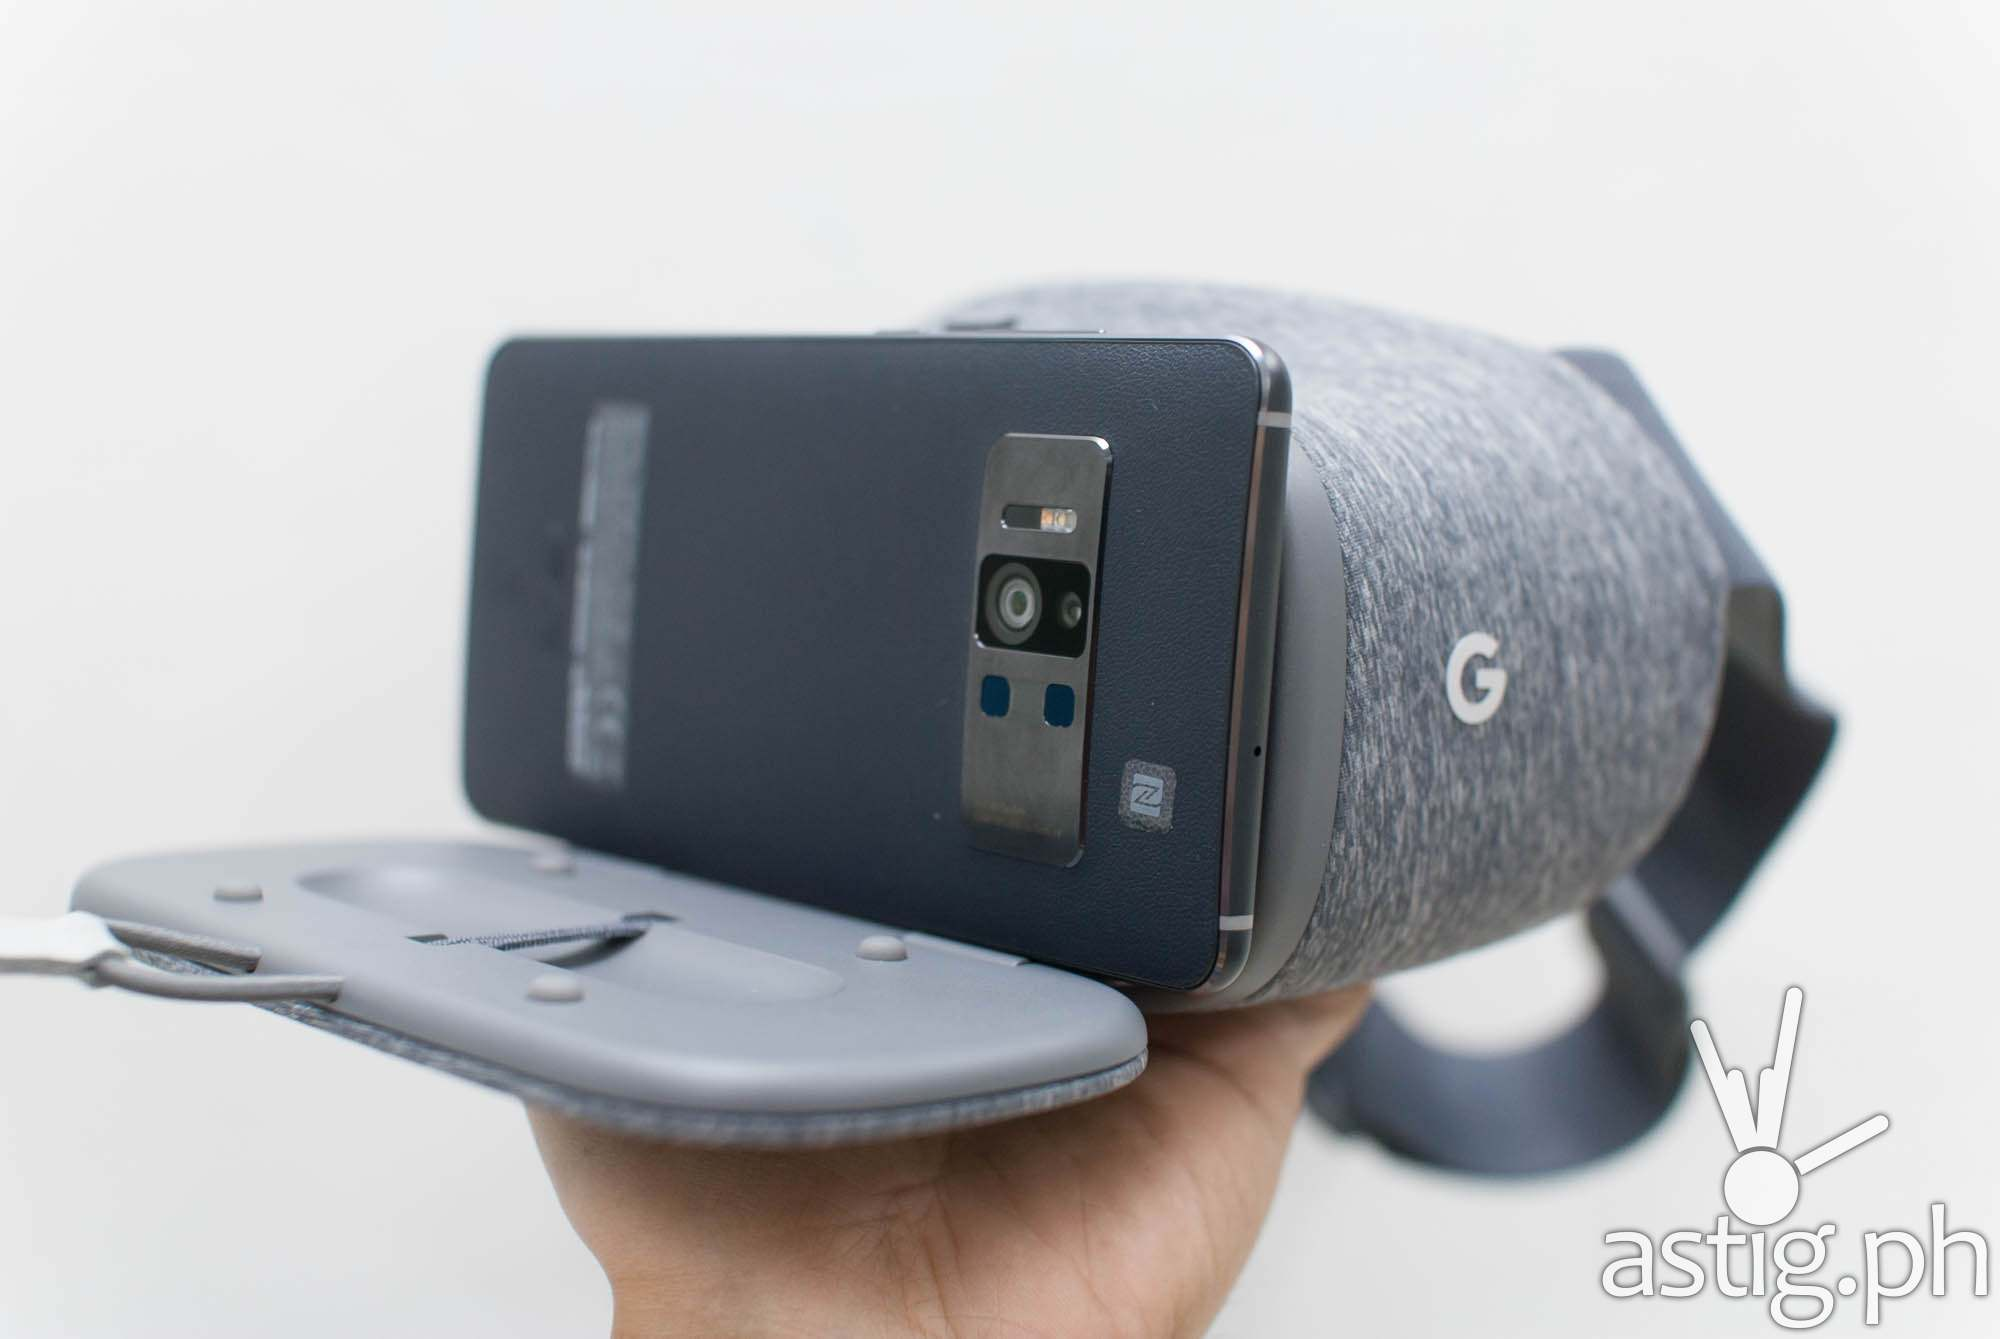 ASUS Zenfone AR with Google Daydream View headset